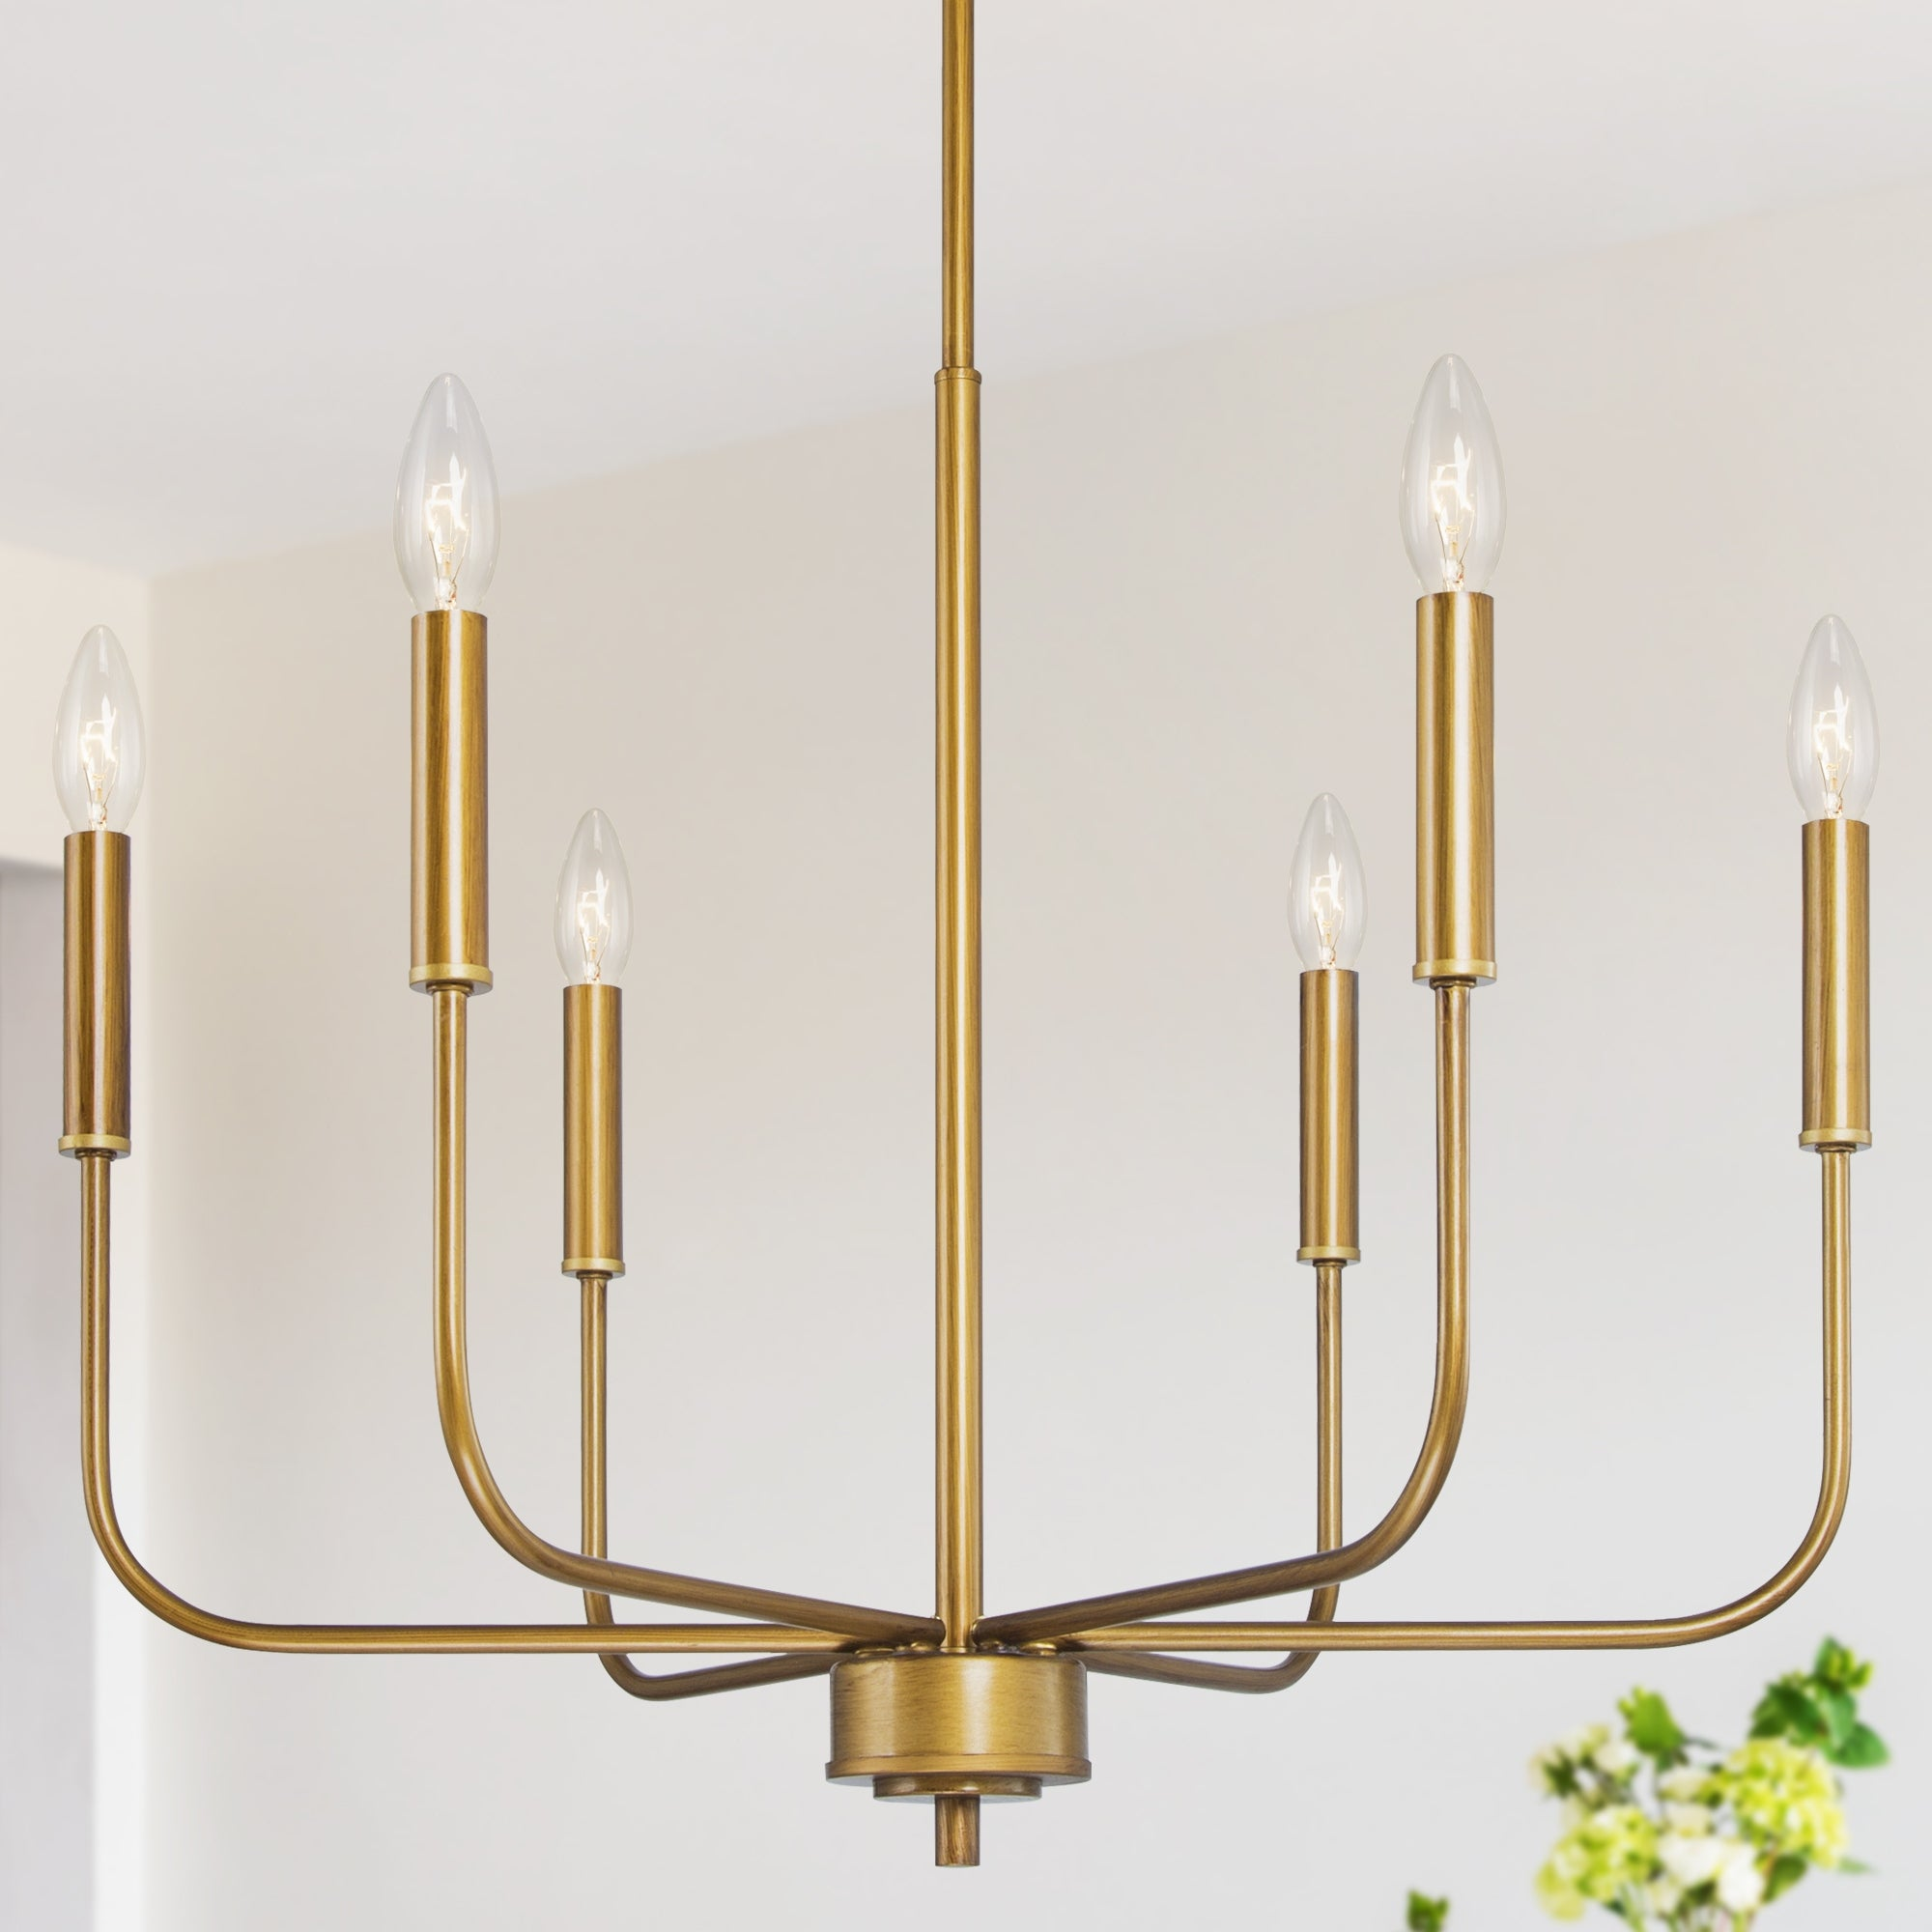 Shop Mid Century 6 Lights Candle Chandelier Brass Gold Hanging Pendant Lighting For Kitchen Island Overstock 32221784